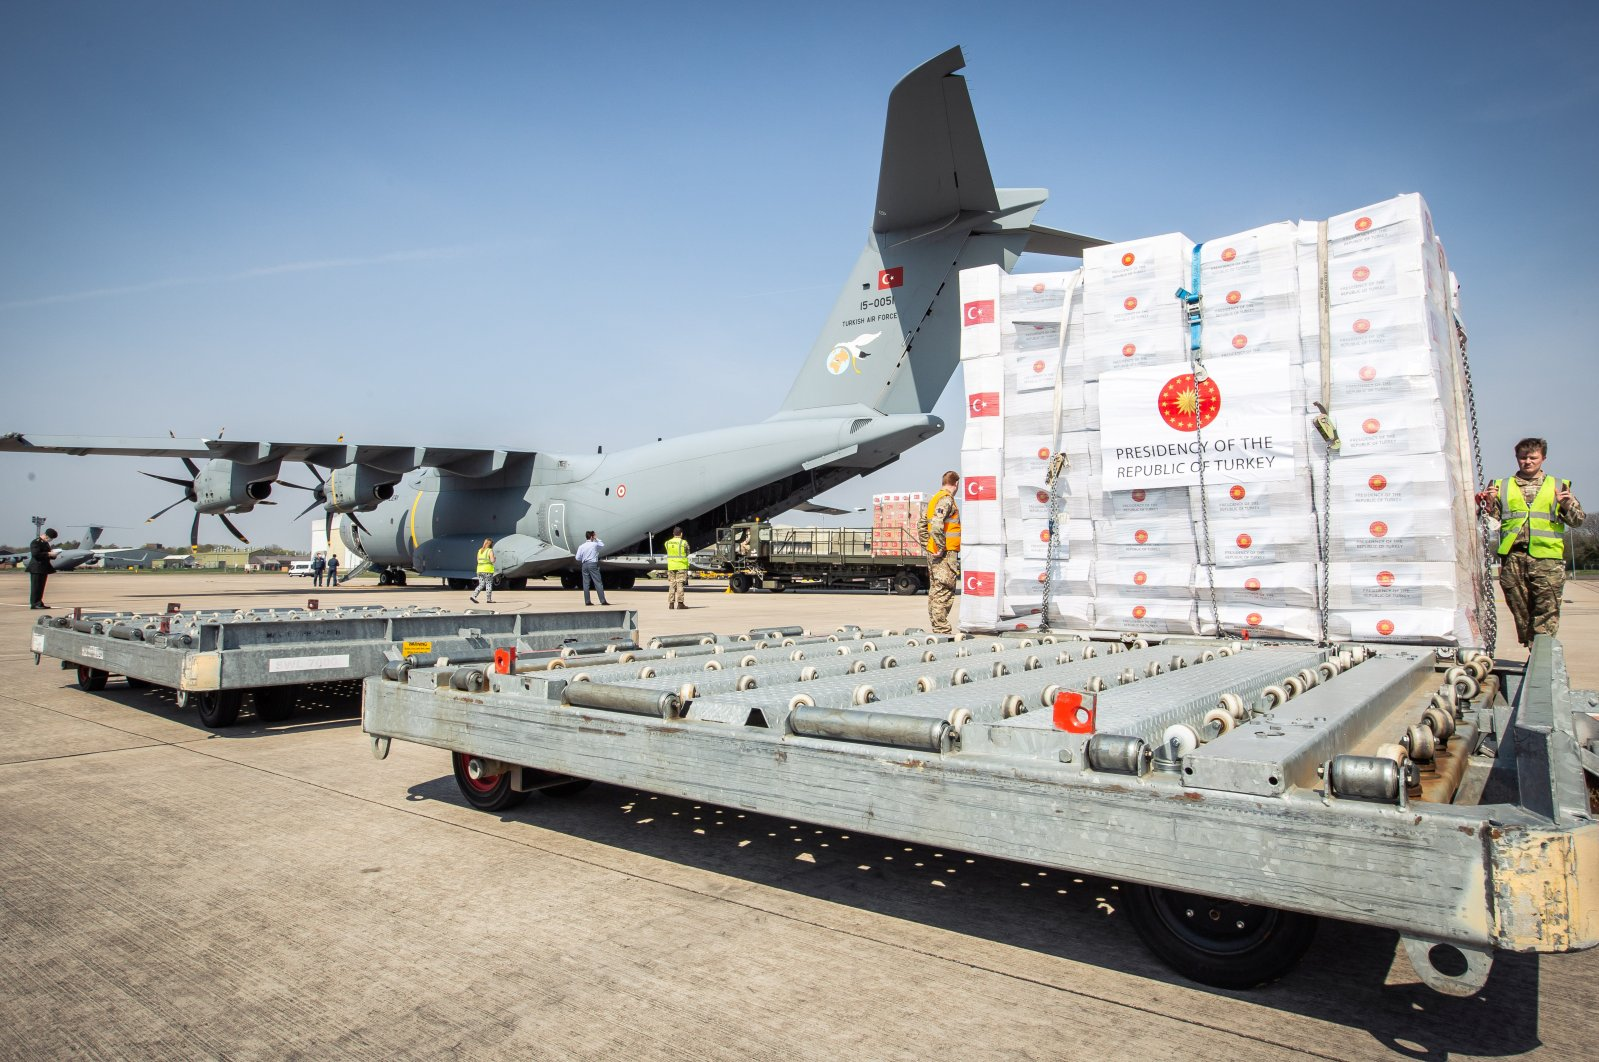 Crucial supplies of personal protective equipment (PPE) for medical staff are delivered from Turkey into a Royal Air Force base for distribution around the country, amid the coronavirus disease, in Carterton, Britain, April 10, 2020. (REUTERS)